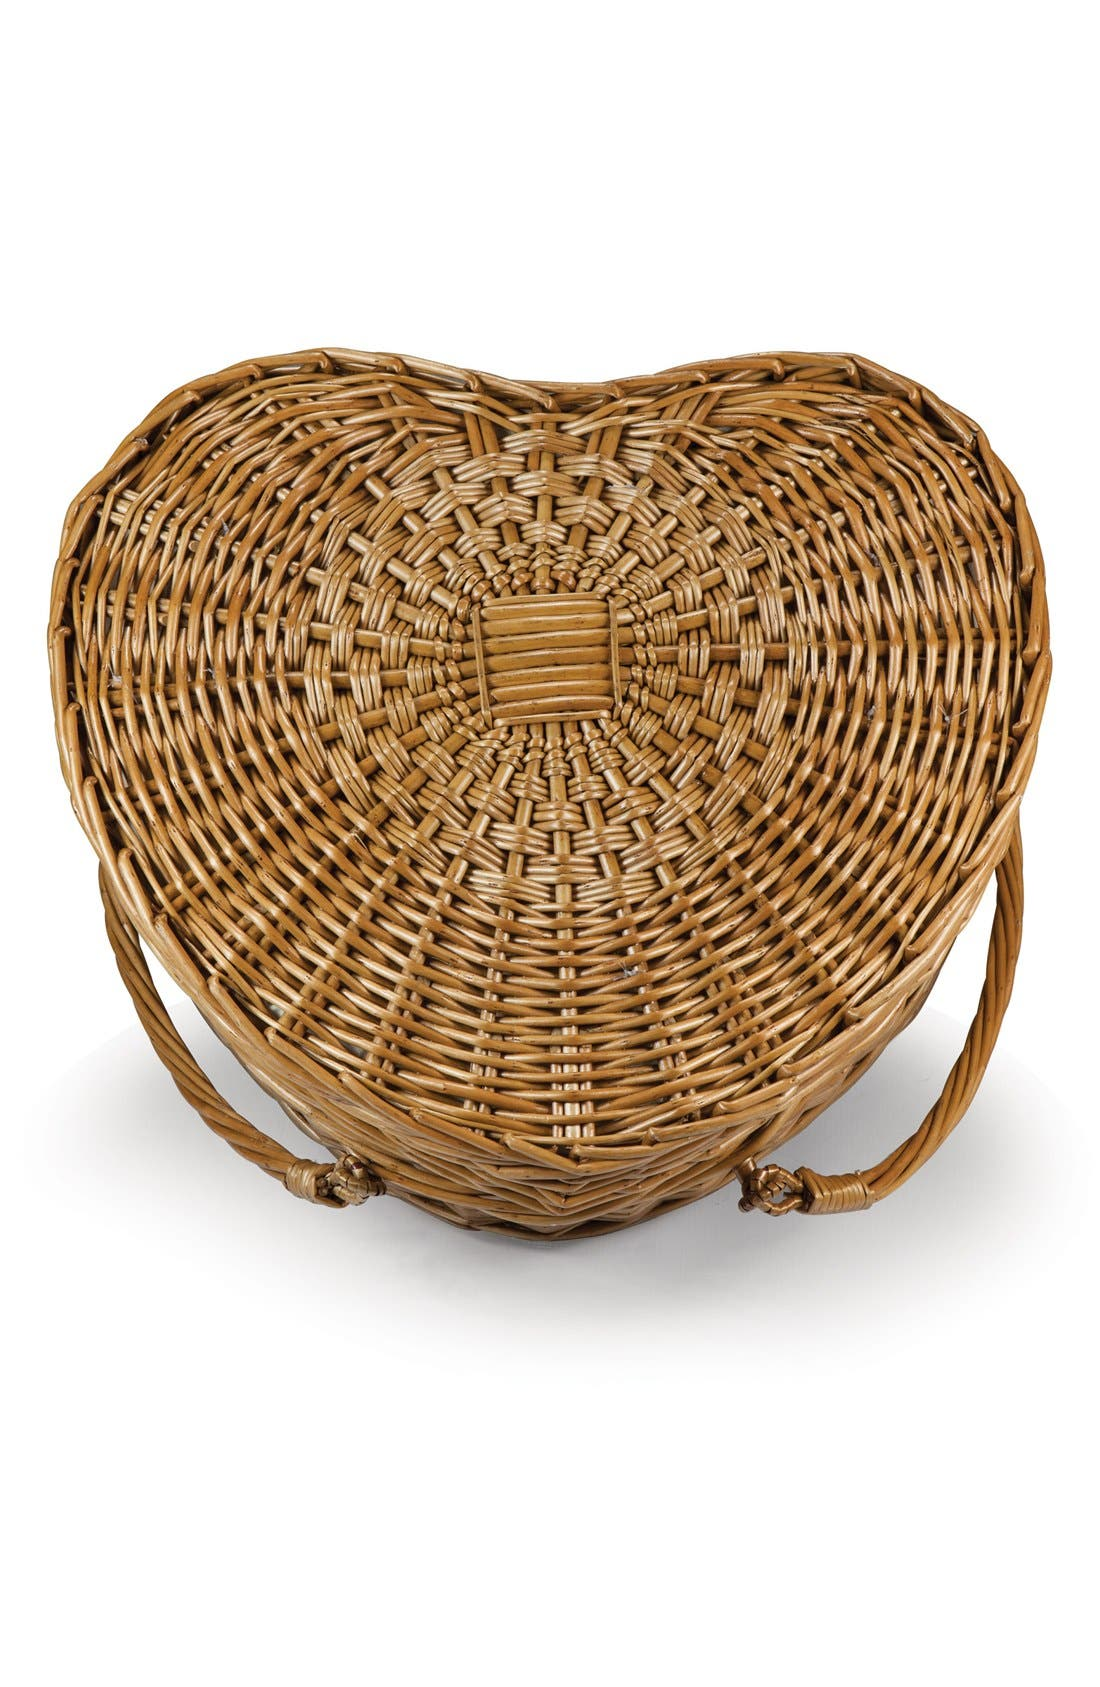 Heart Shaped Wicker Picnic Basket,                             Alternate thumbnail 5, color,                             200